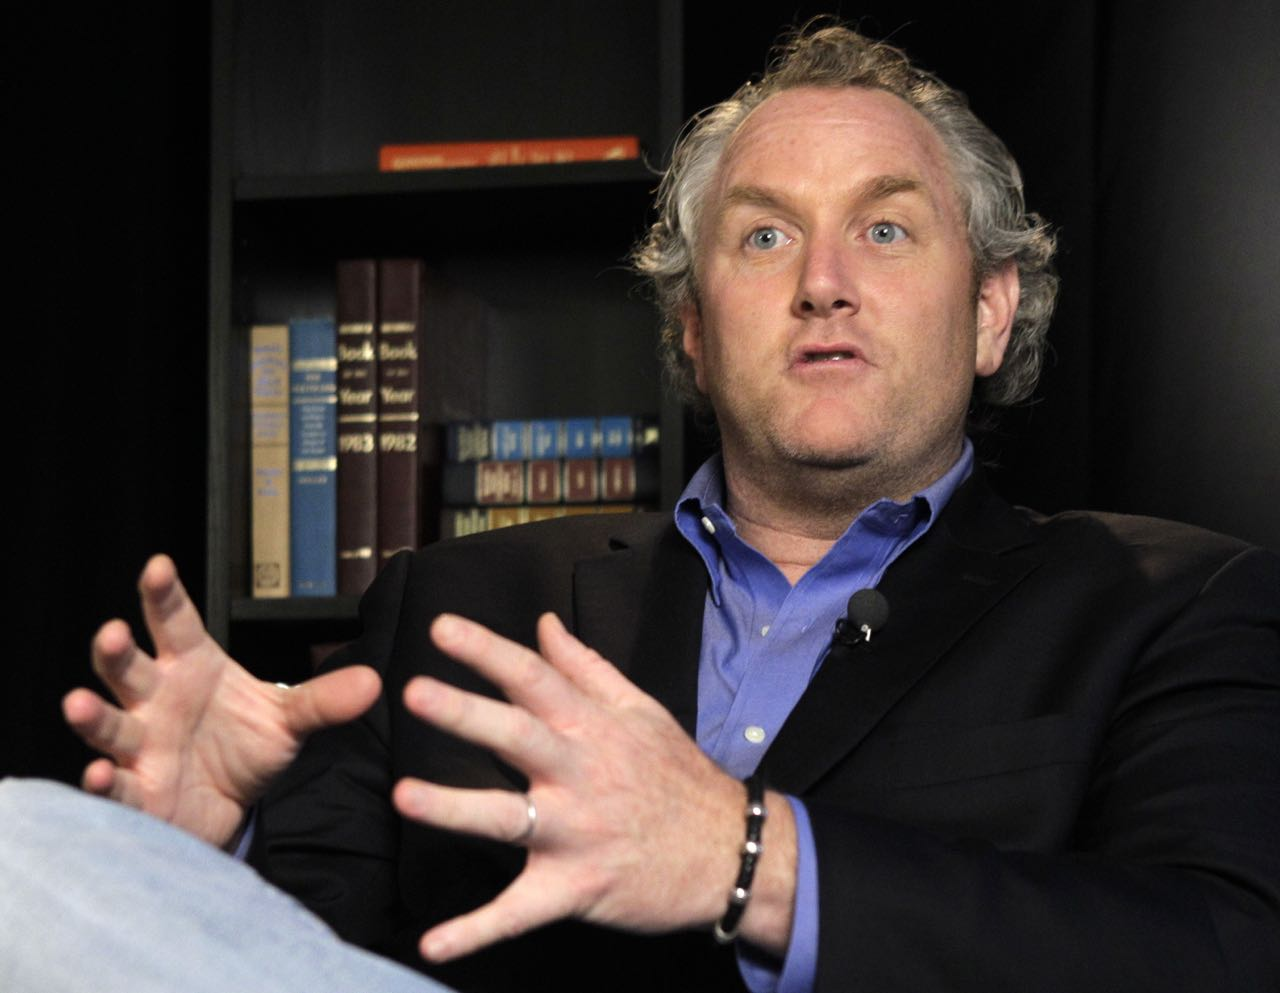 Conservative blogger Andrew Breitbart, the namesake of Breitbart News Network, gestures as he speaks during an interview at the Associated Press in New York, Tuesday, June 7, 2011. (AP Photo/Kathy Willens)